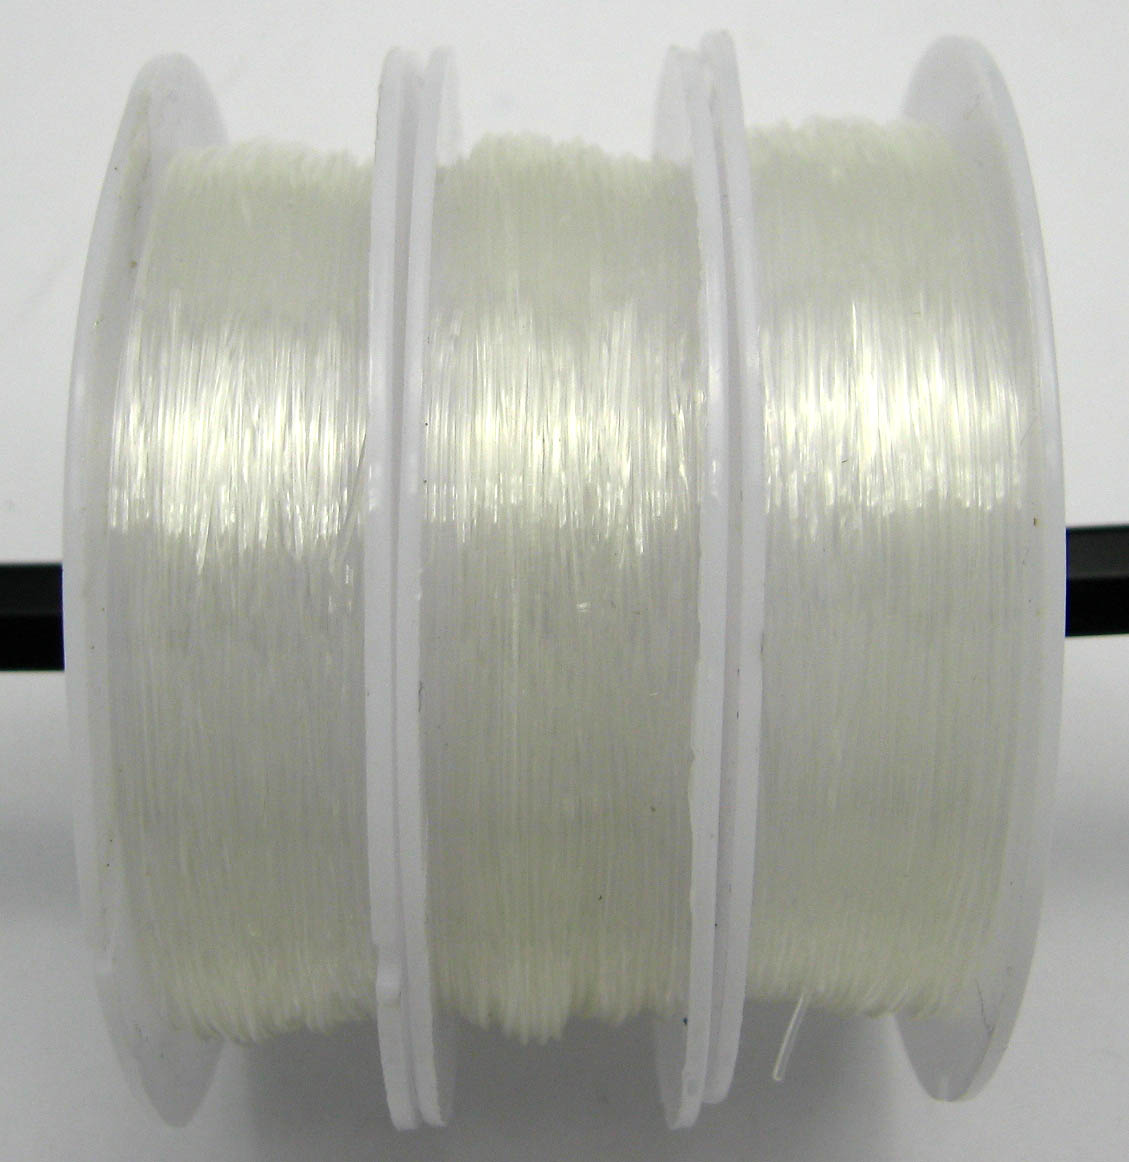 Elastic Cord 0.7mm Super Strong x 1 spool (10m)